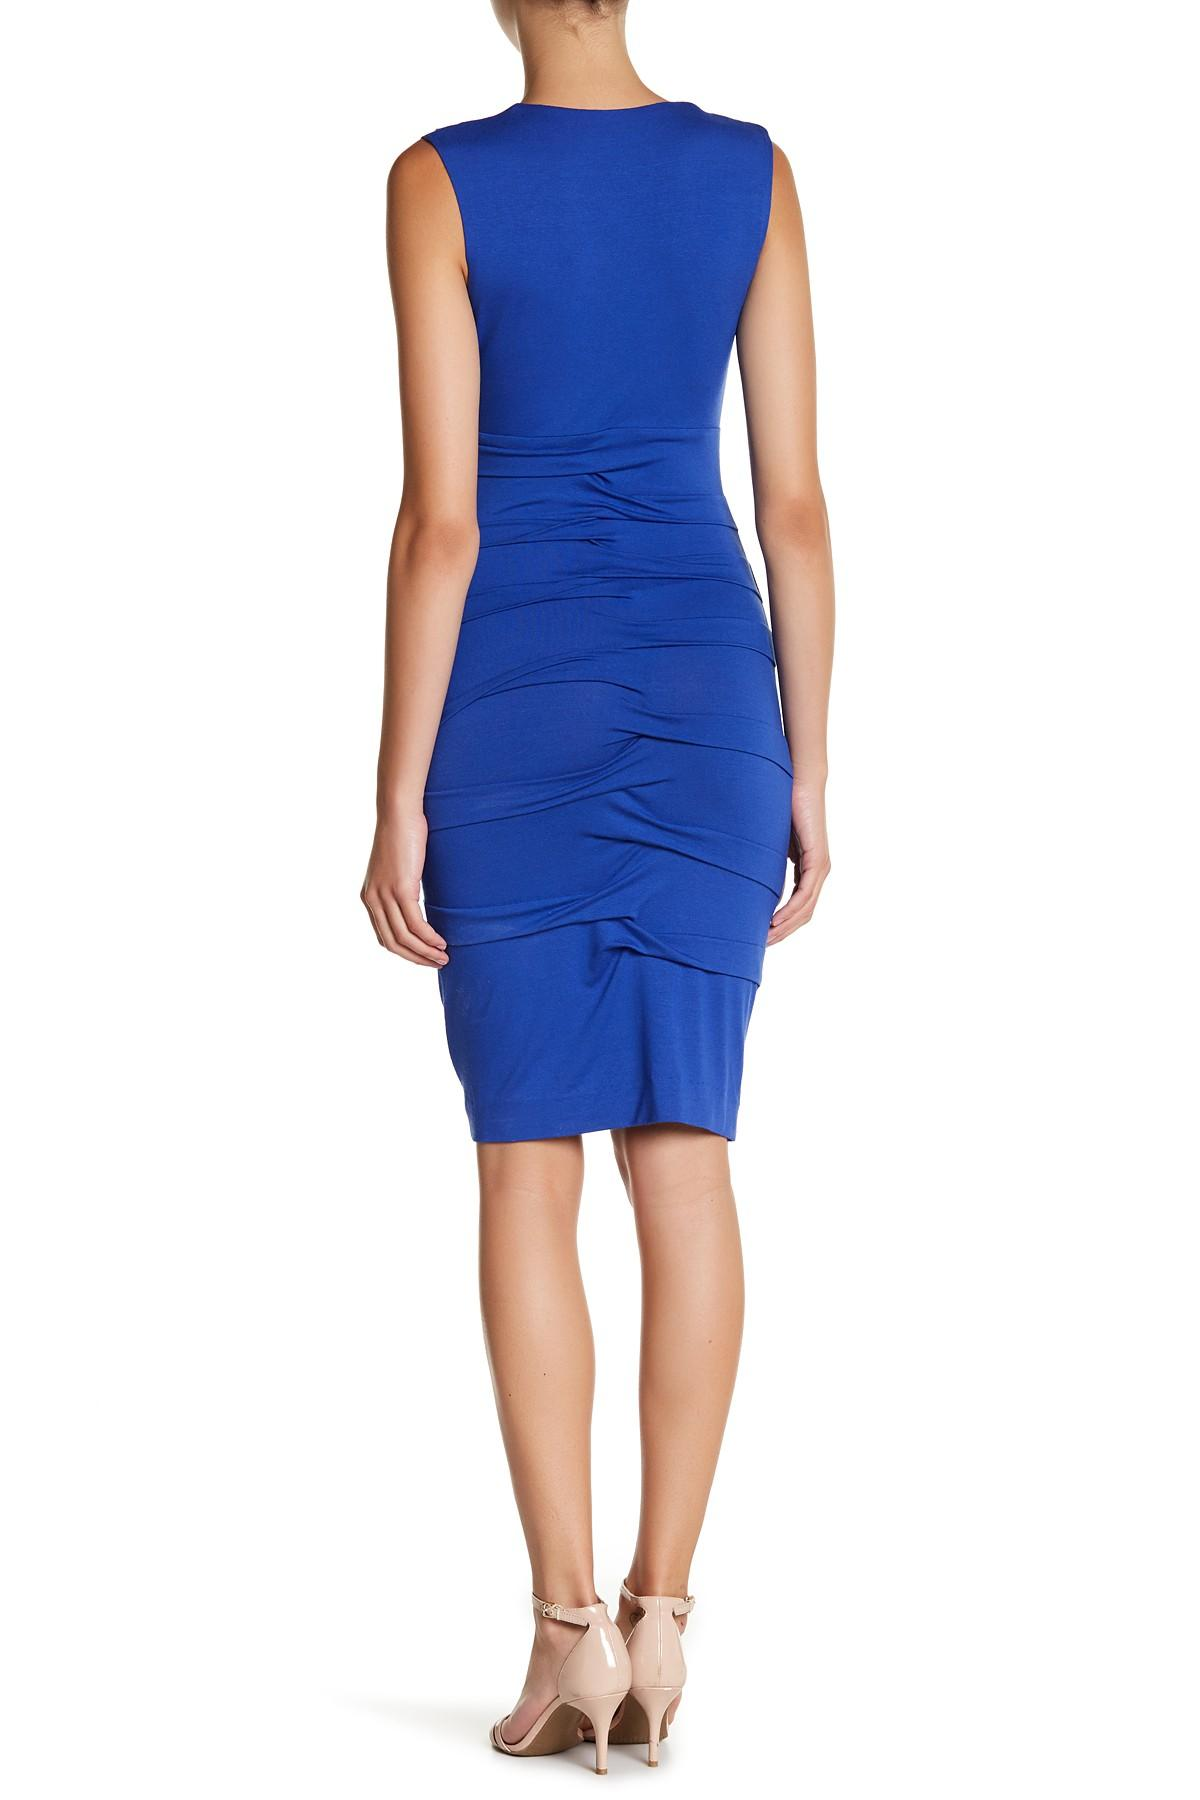 Lyst nicole miller sleeveless jersey sheath dress in blue for Nicole miller wedding dresses nordstrom